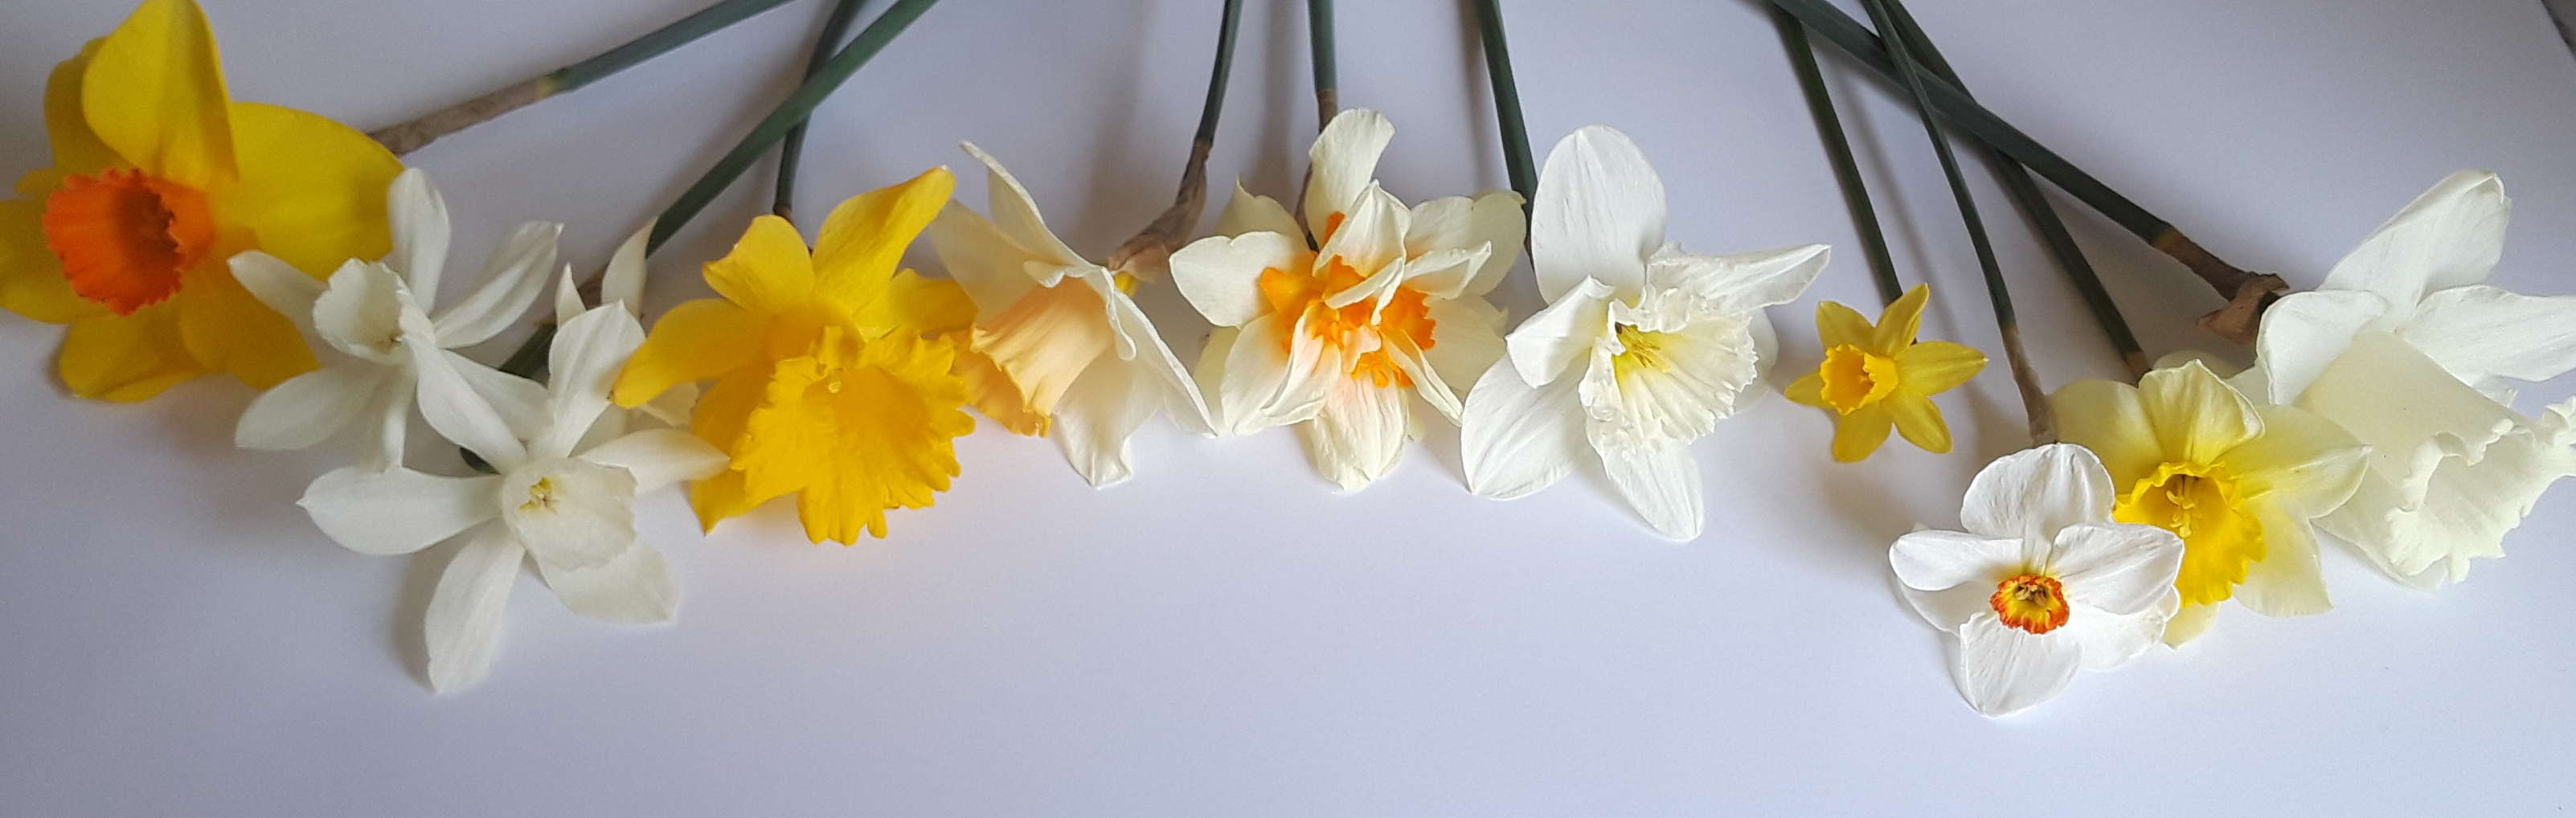 a lined up display of yellow, white, and multi-colored daffodils